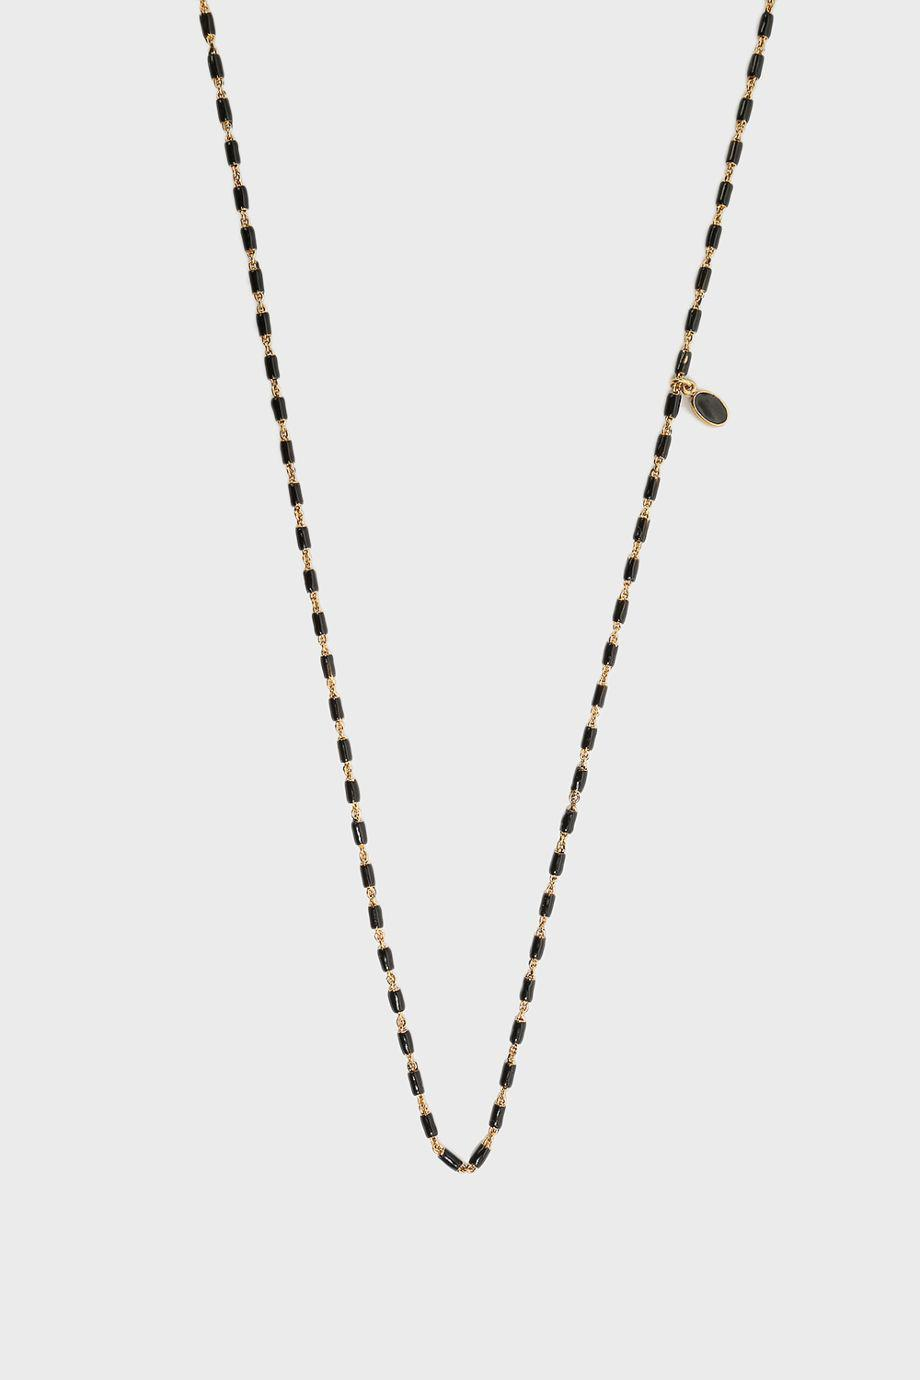 enamelled charm necklace - Metallic Isabel Marant wpSICsahKH